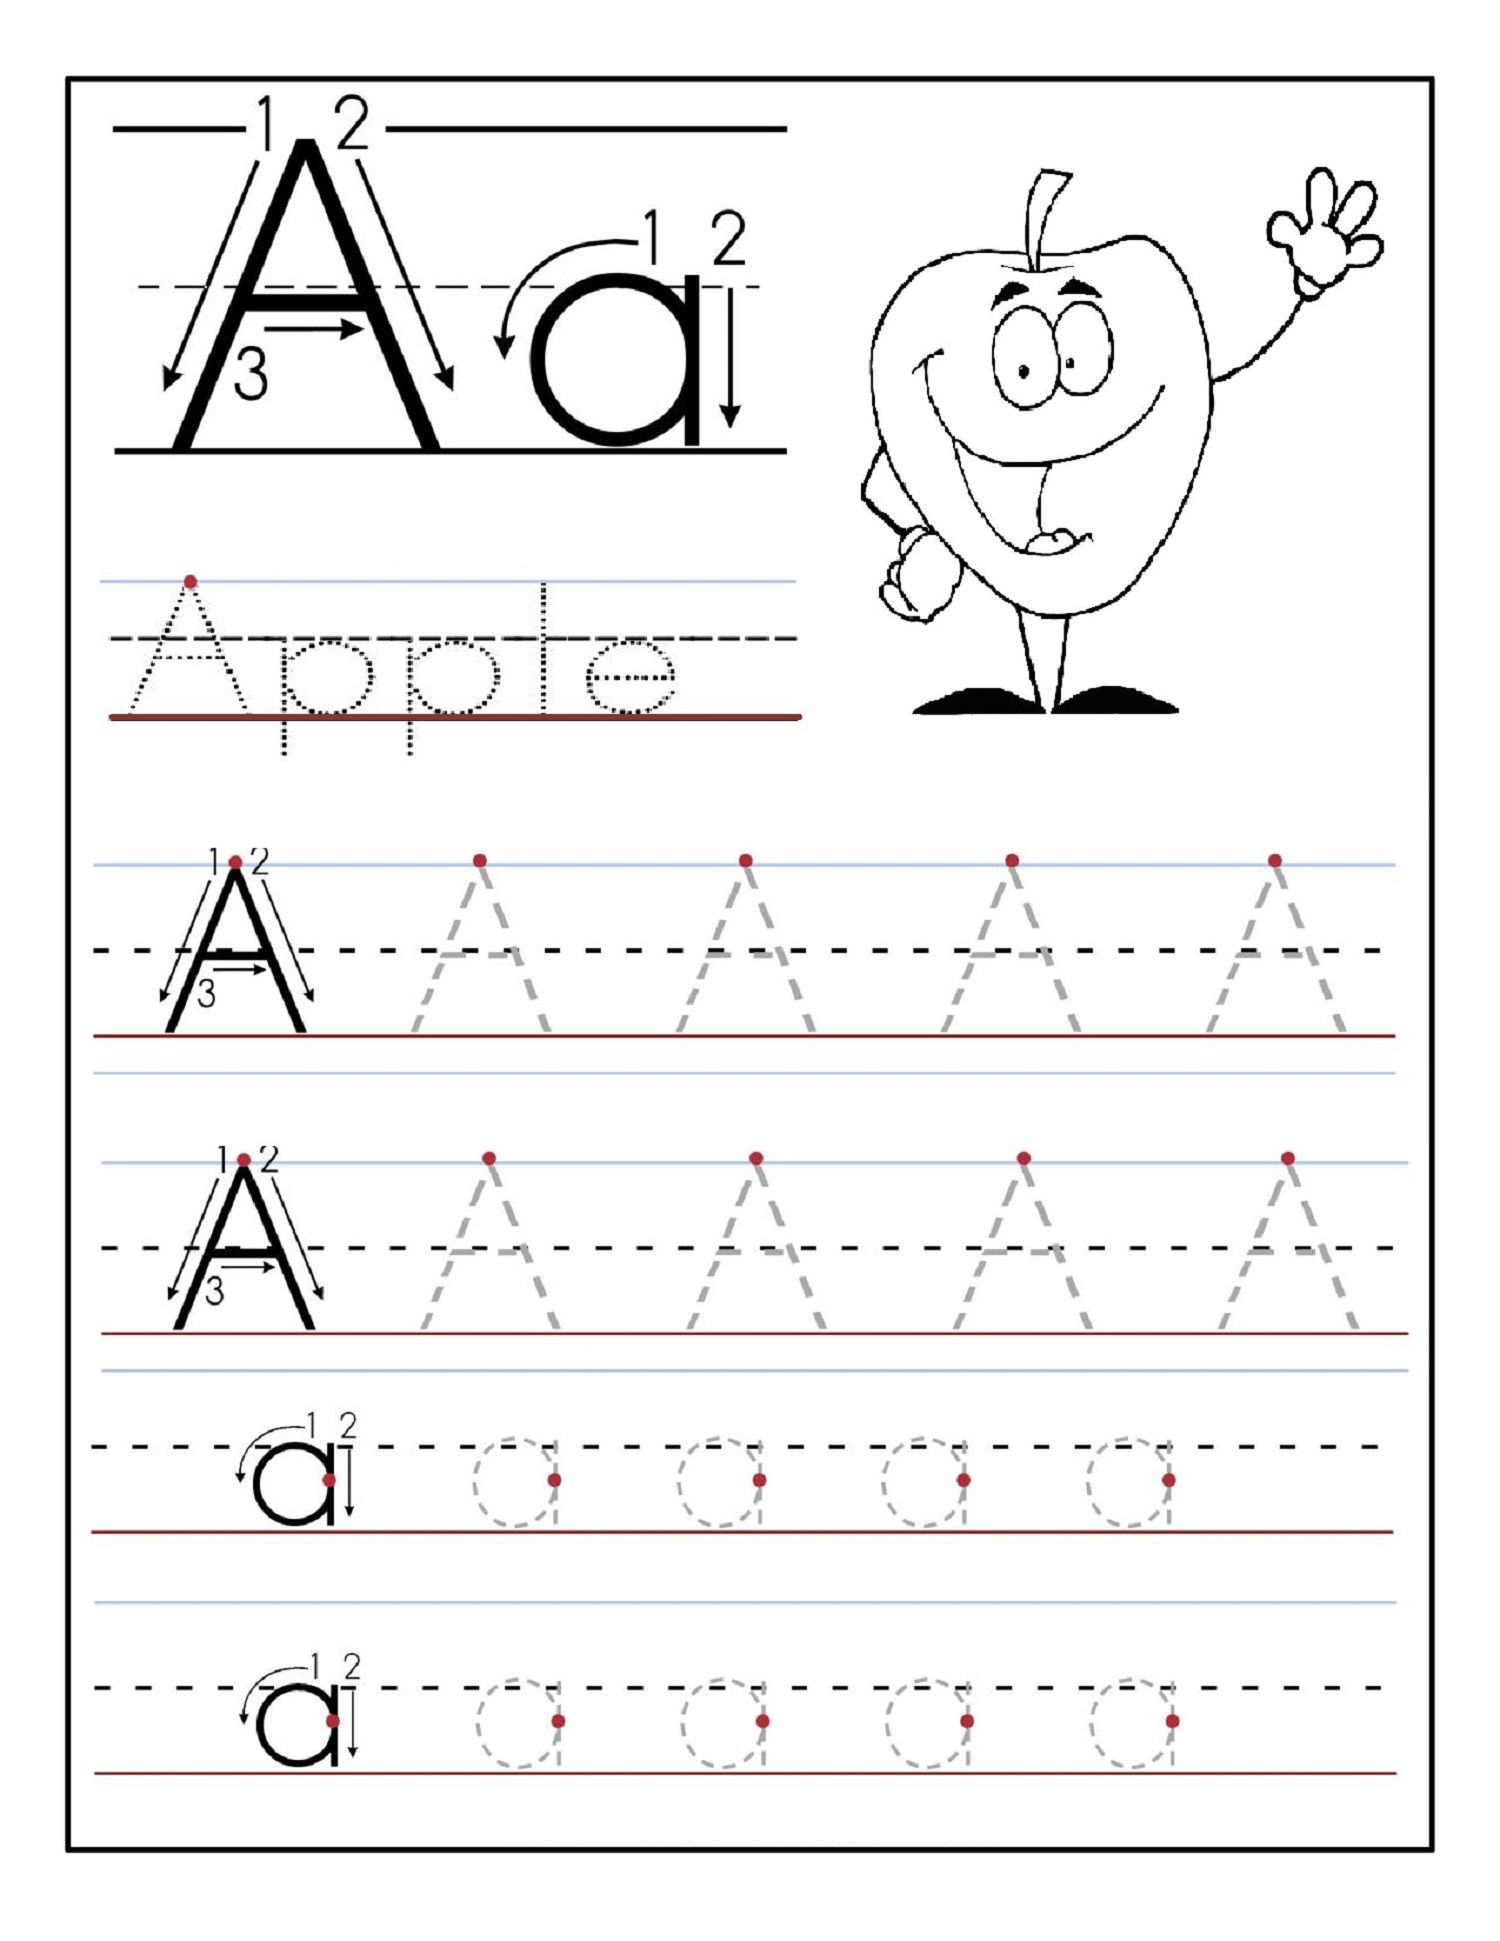 Worksheet Tracing Letter A tracing the letter a for first writing learning dear joya kids activity pinterest letters ojays and wri